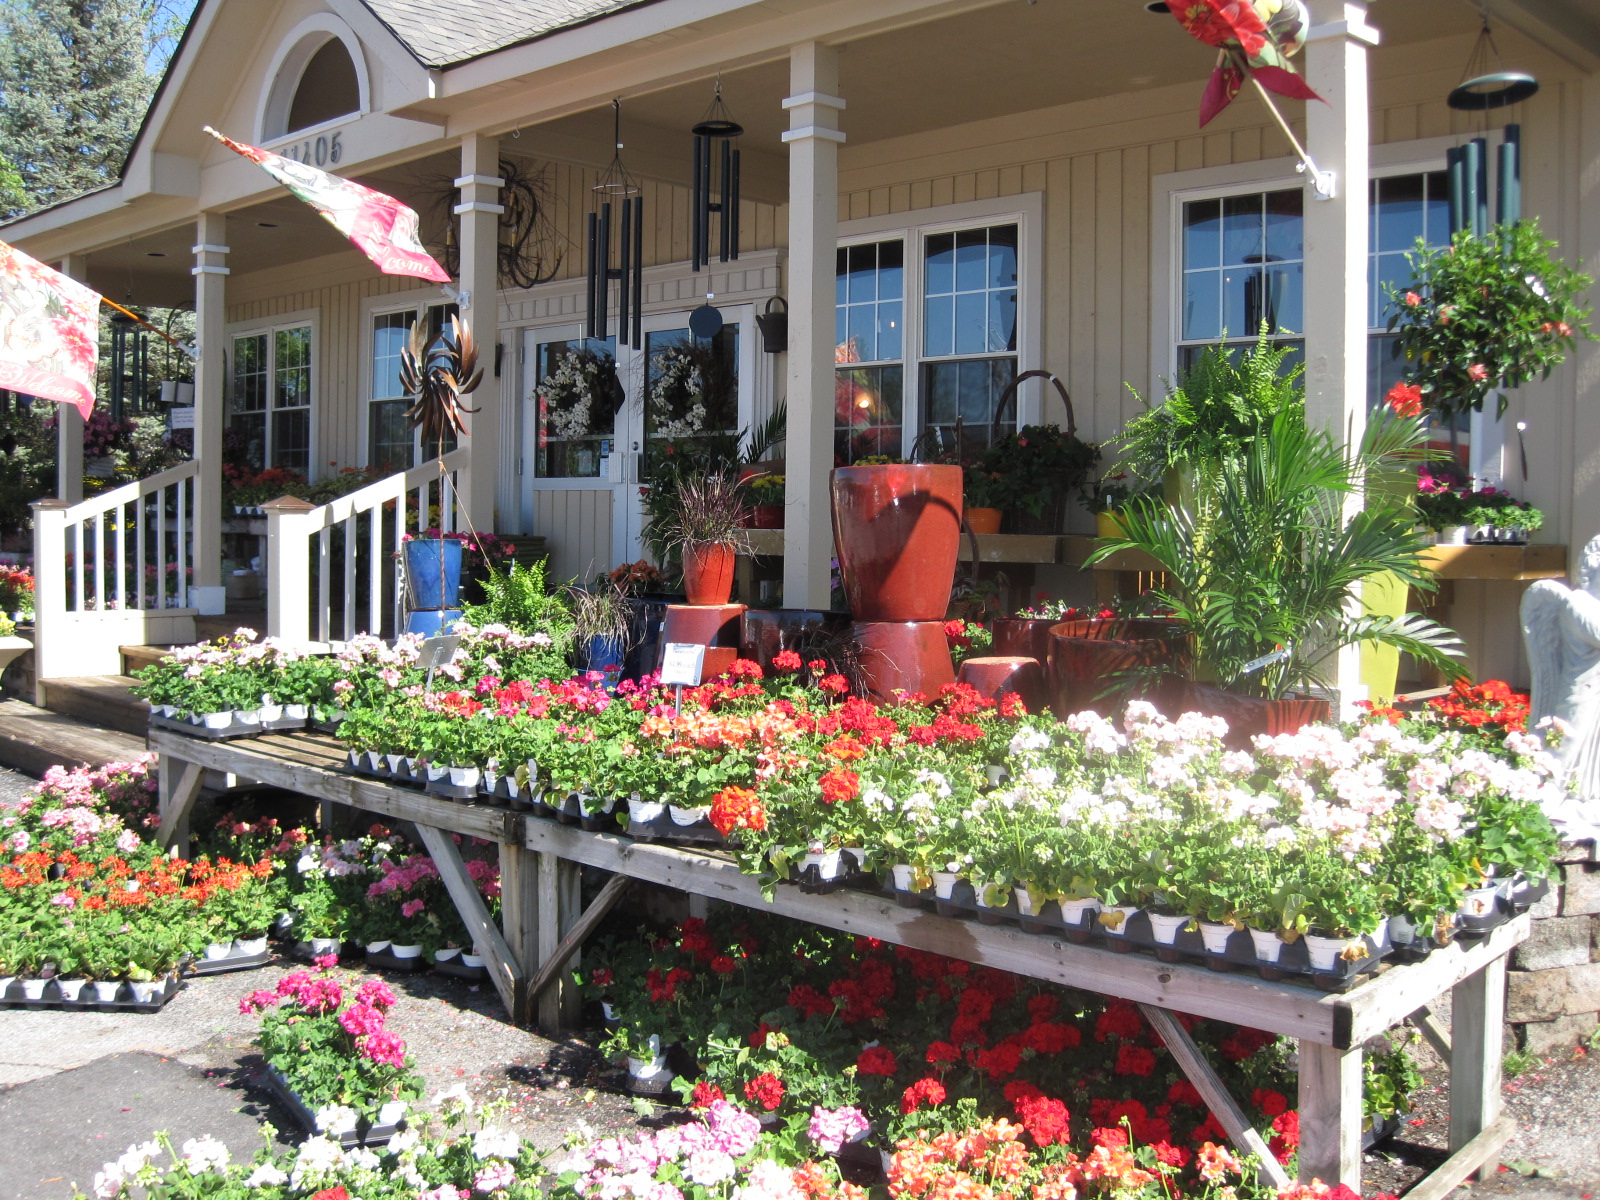 Home En Garden Allisonville Nursery Garden And Home